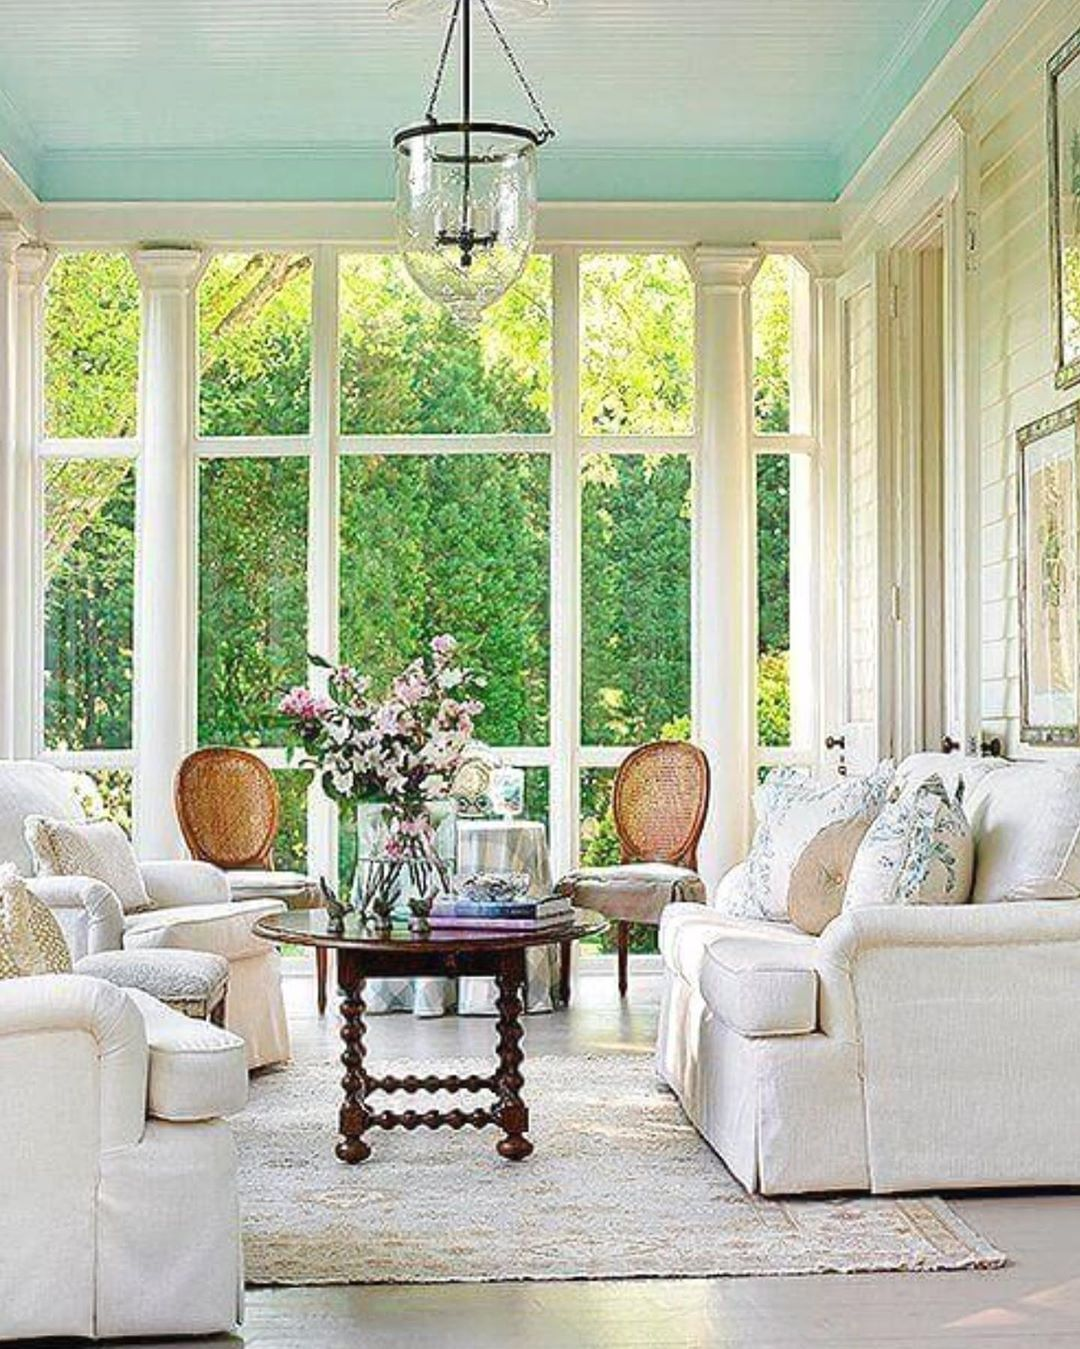 As Summer Approaches I Have Sunroom Design On My Mind This Sunroom Window Is Awesome The Space Inspires R Sunroom Decorating Sunroom Designs Relaxation Room Awesome sunroom design ideas